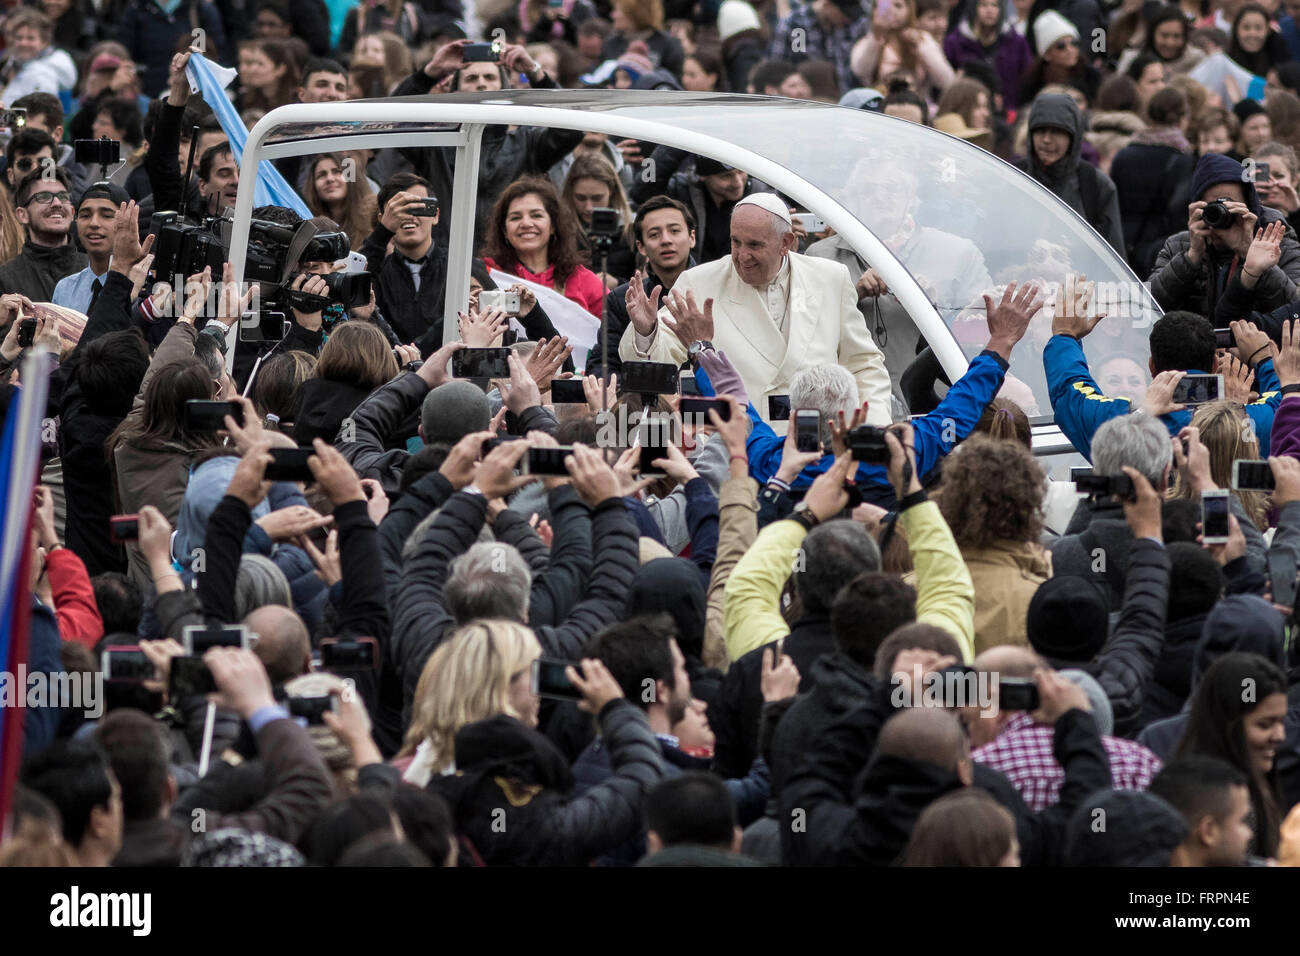 Vatican City, Vatican. 23rd Mar, 2016. Pope Francis rides through the crowds of the faithful as he holds his Weekly - Stock Image